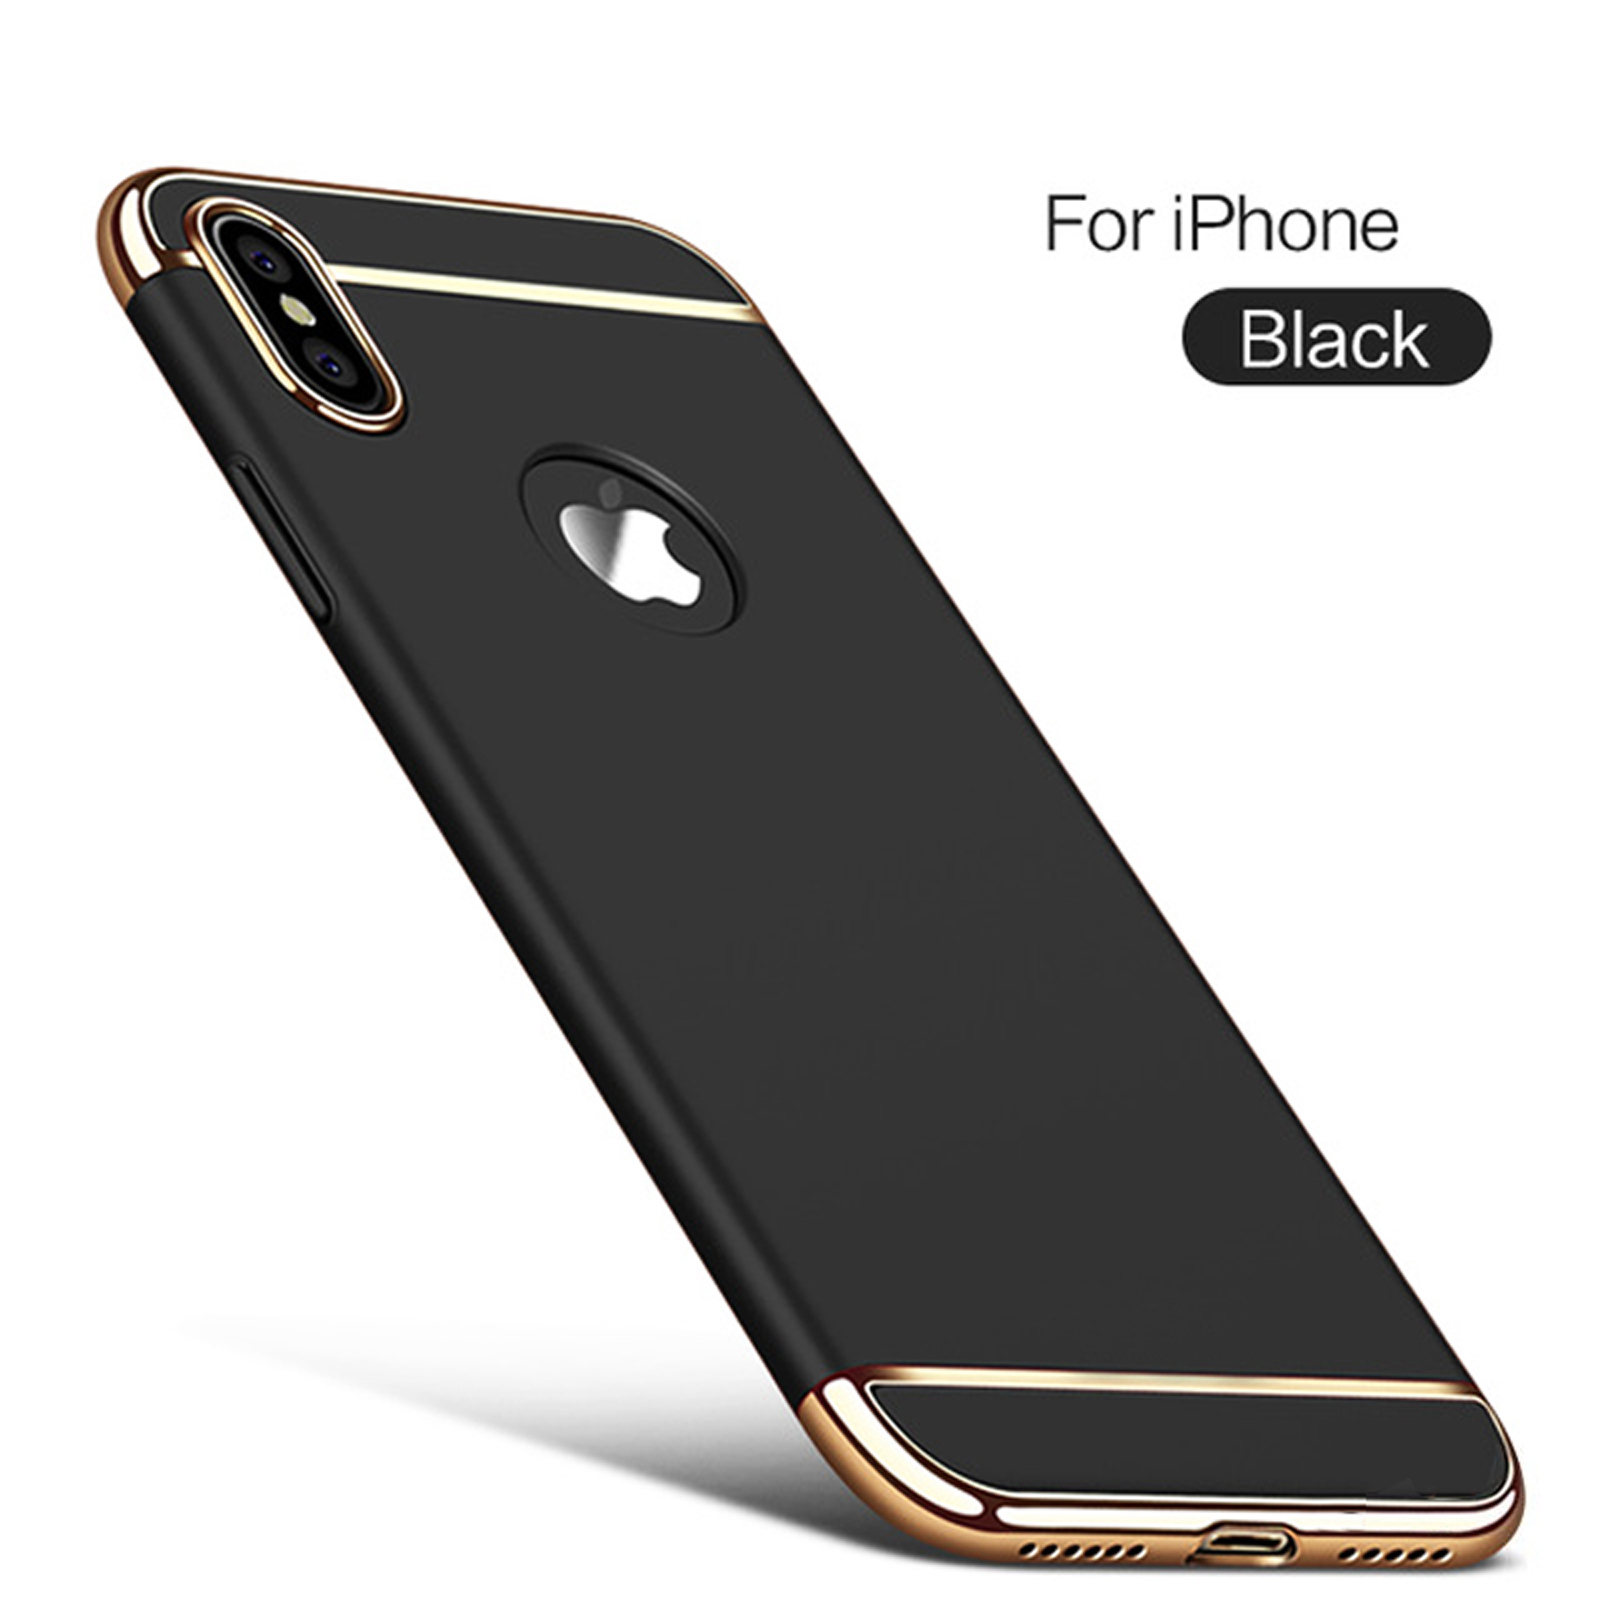 Luxury-Matte-Case-Tempered-Glass-Cover-For-Apple-iPhone-X-XS-XR-Max-10-8-7-6s-6 thumbnail 39